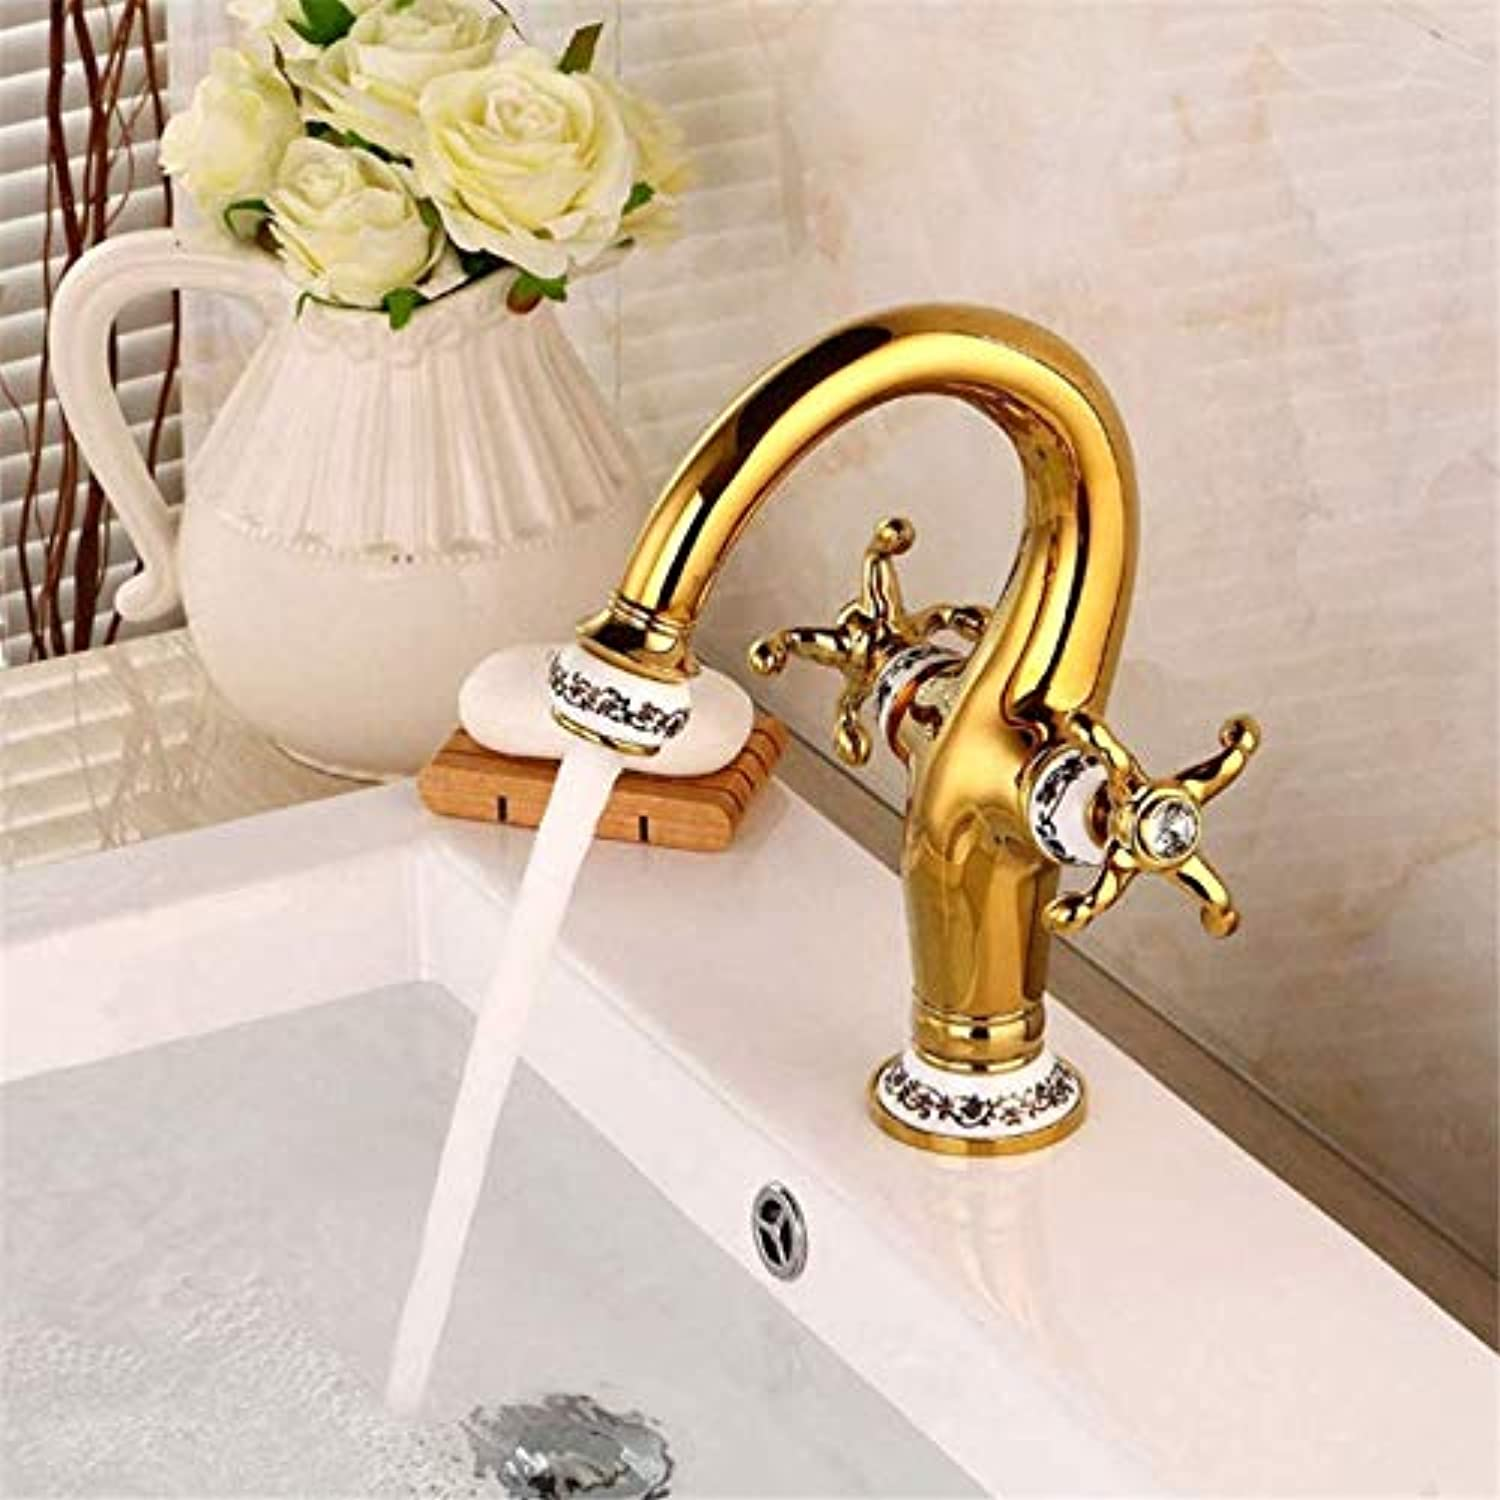 Stylish Bathroom Sink Faucet Retro Ceramic Plating gold Mirror Effect Brass Bathroom Faucet Double Handle gold Belt Pattern